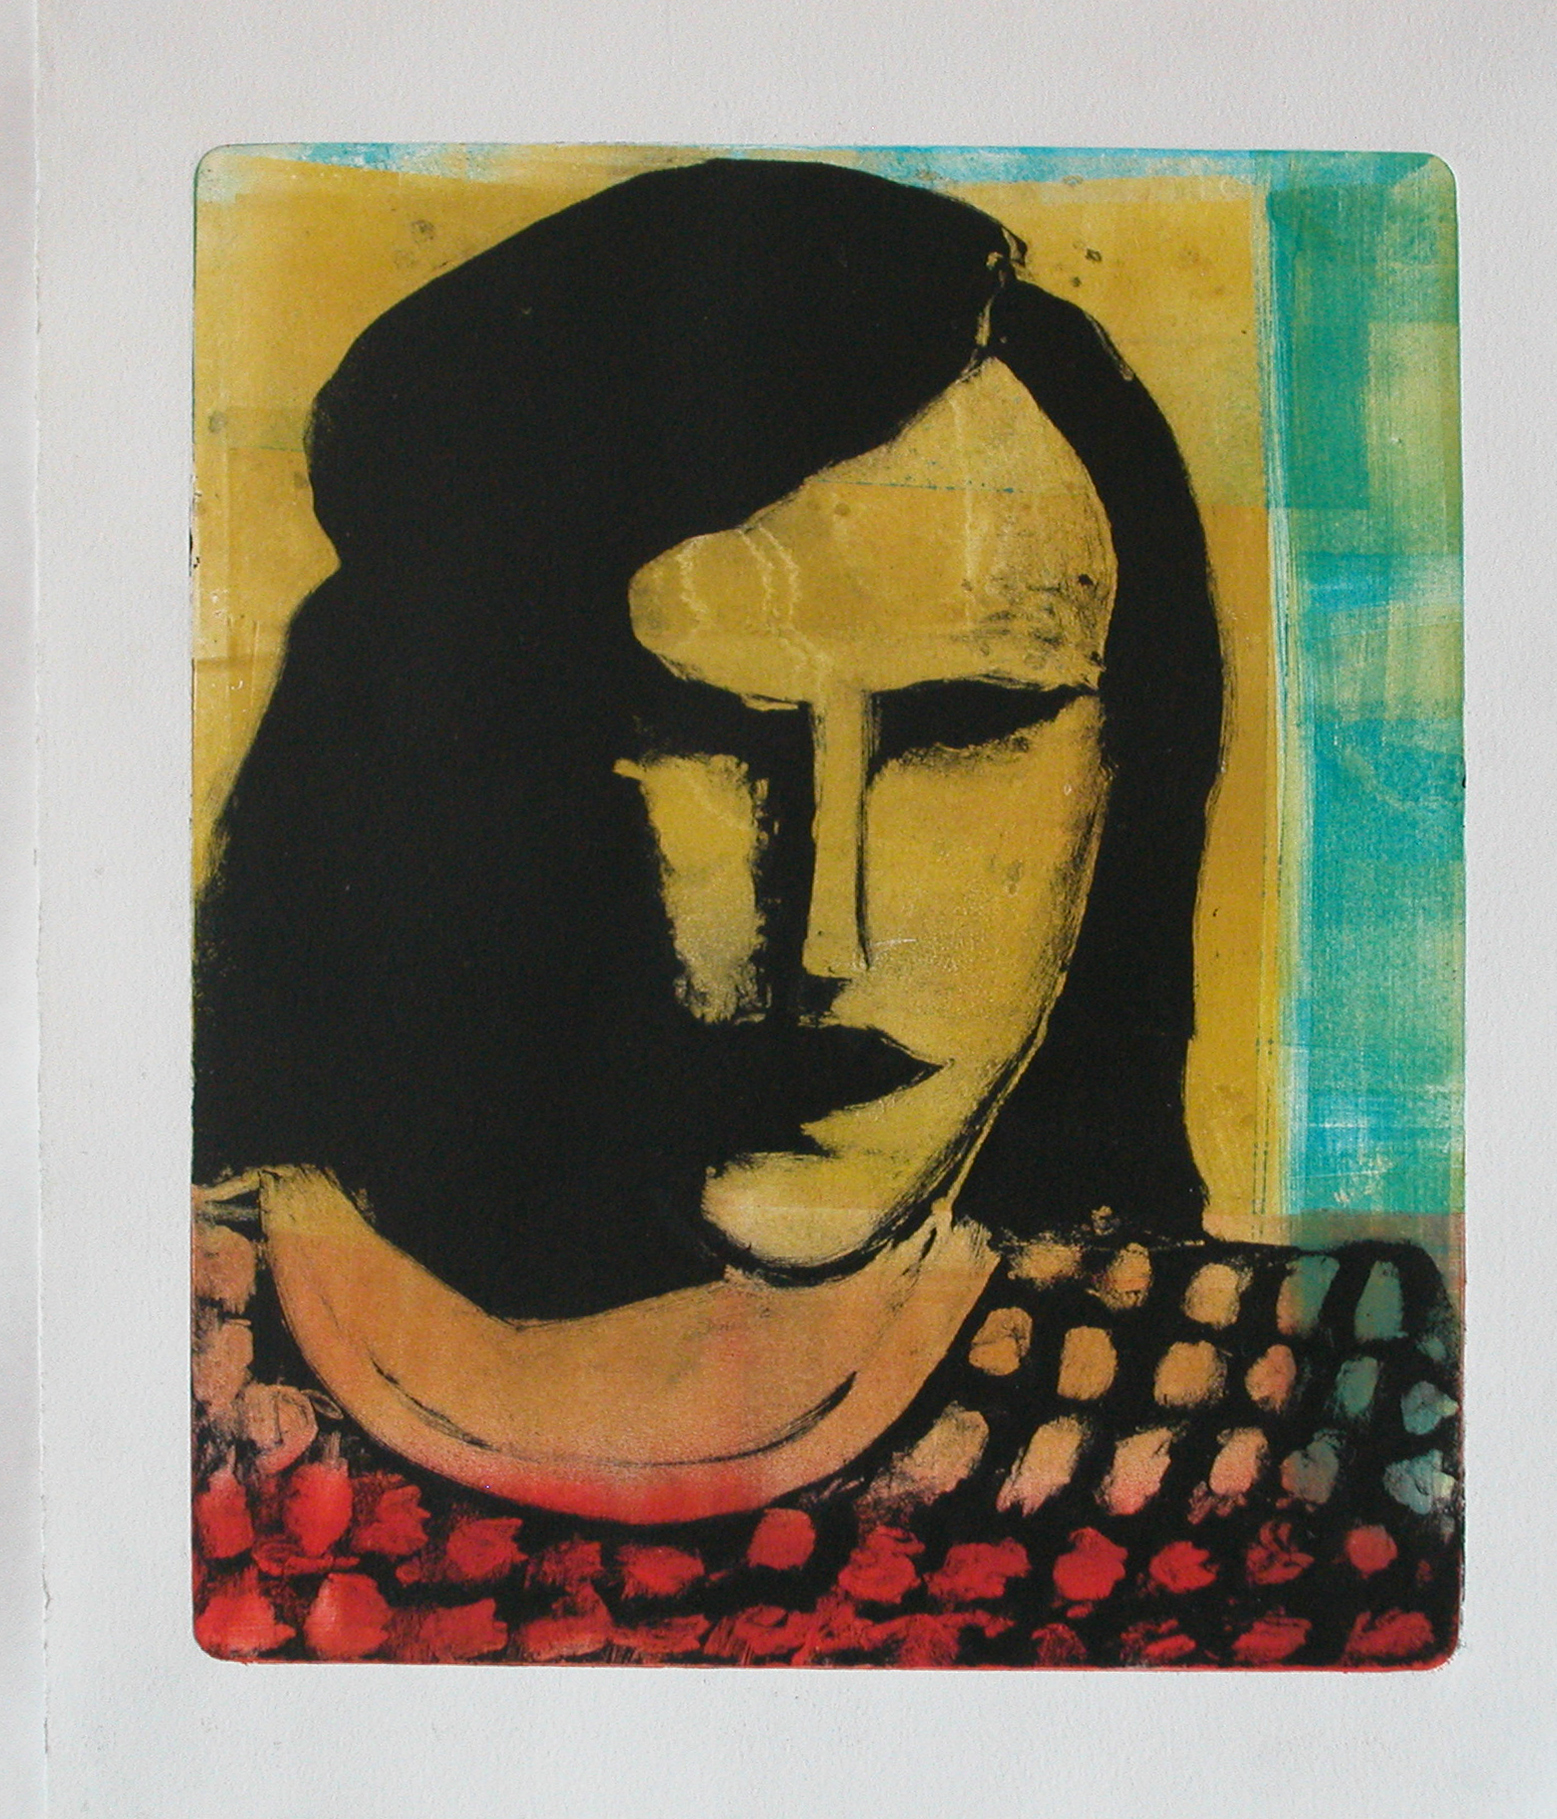 Milton Avery Meets Andy Warhol